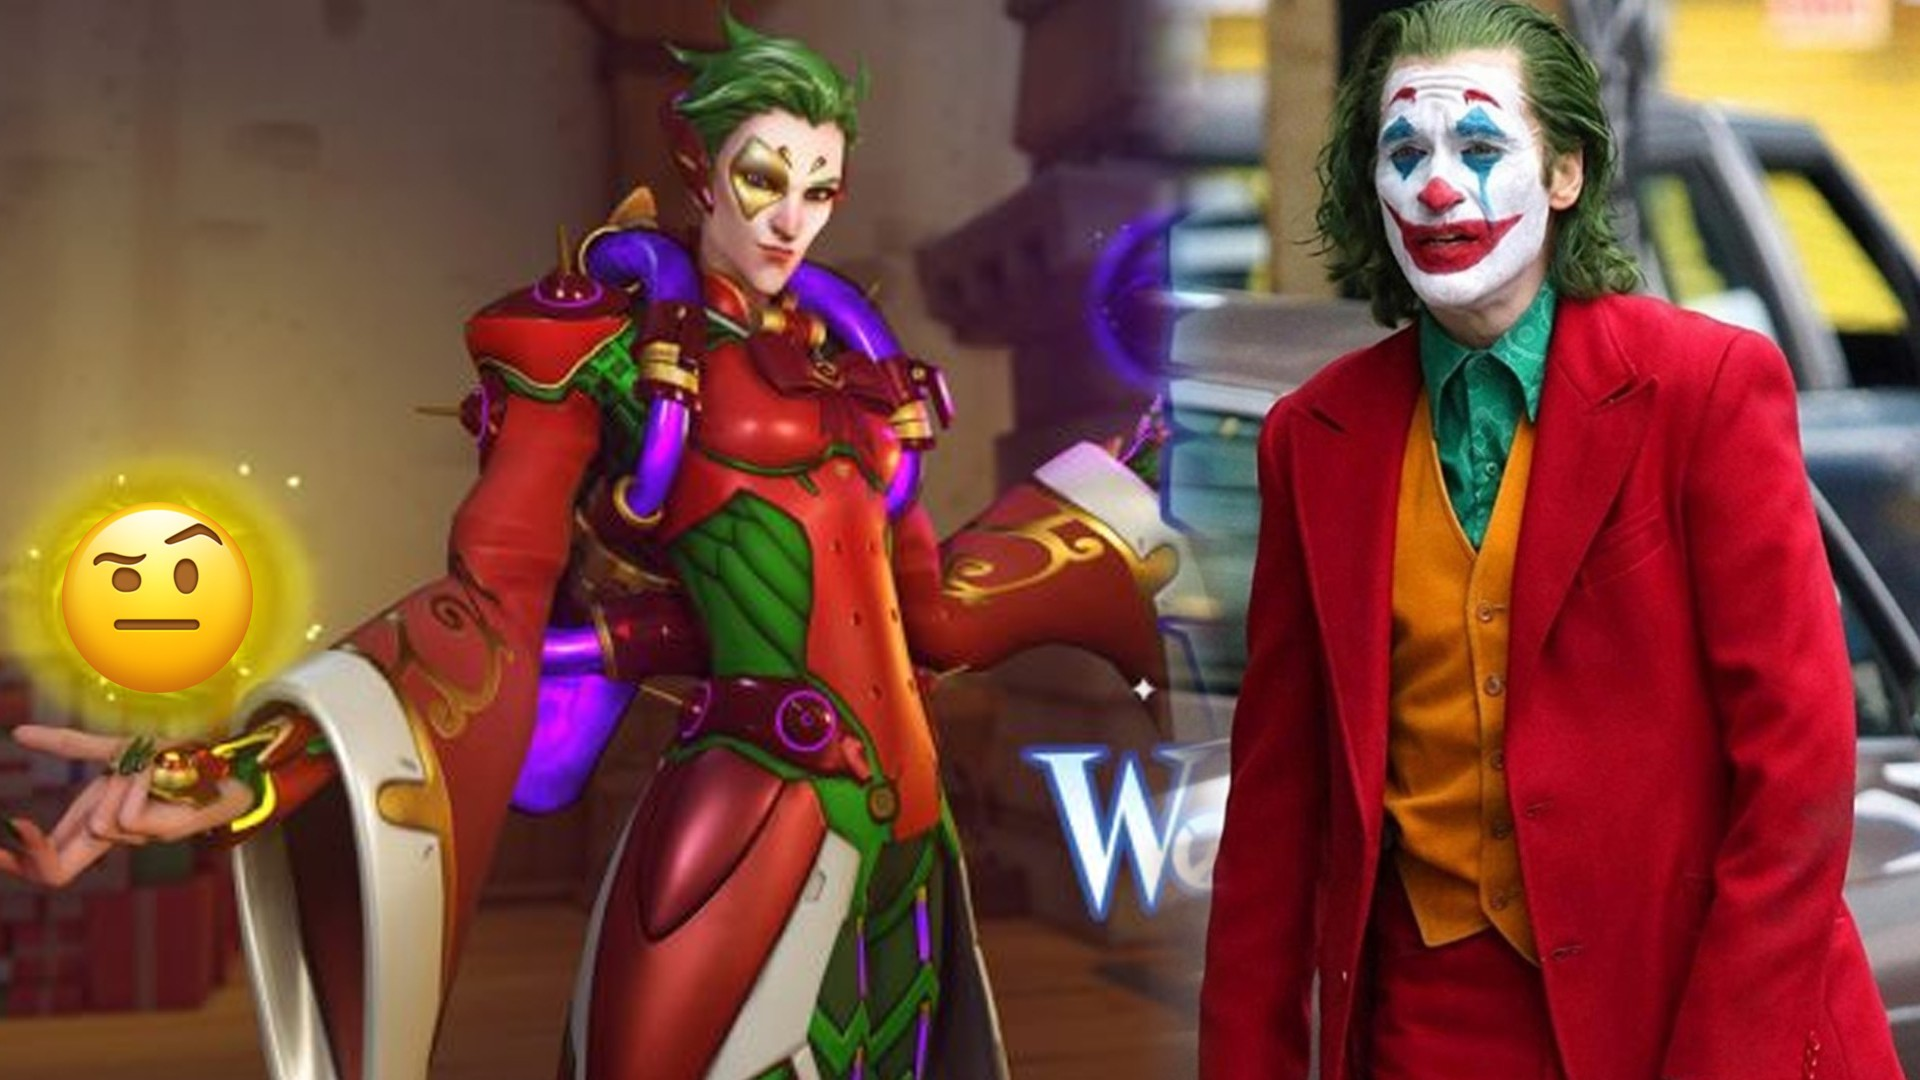 The Best And Worst Holiday Skins In League Of Legends Fortnite And Overwatch Inven Global In order to complete this challenge, you will need to defuse three gas canisters in different. the best and worst holiday skins in